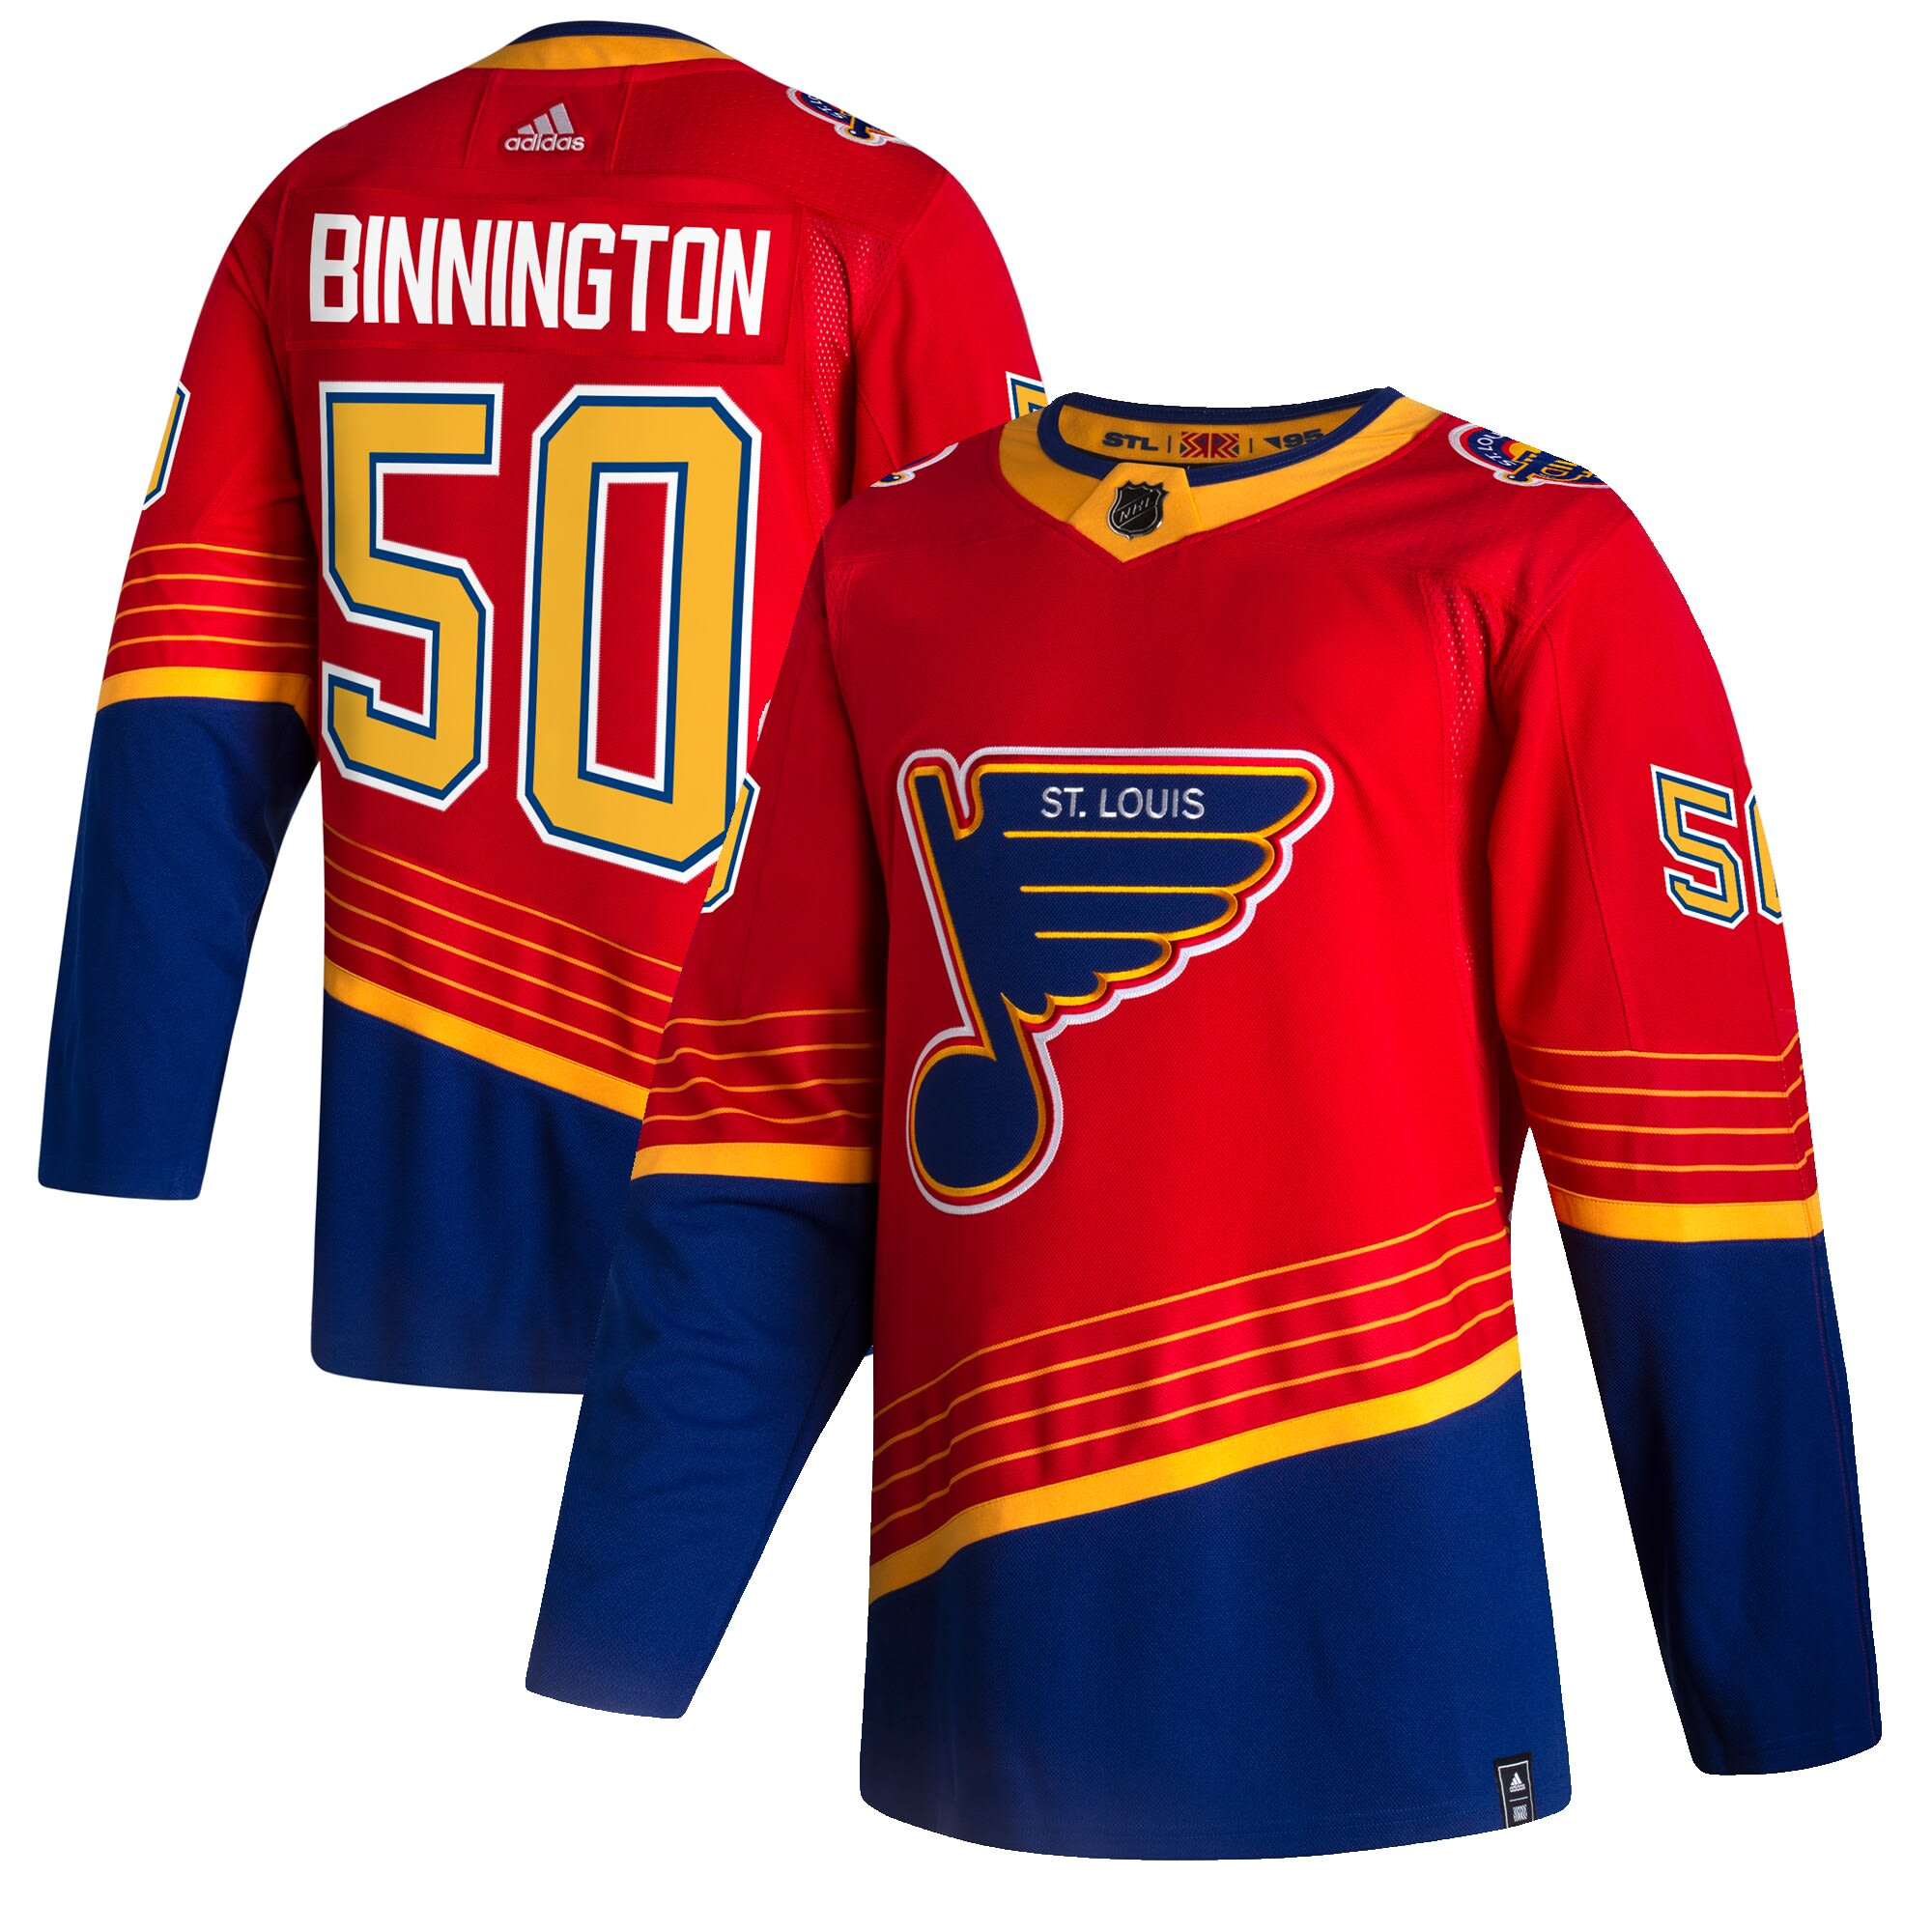 St Louis Blues Fans Need To Check Out These New Reverse Retro Jerseys